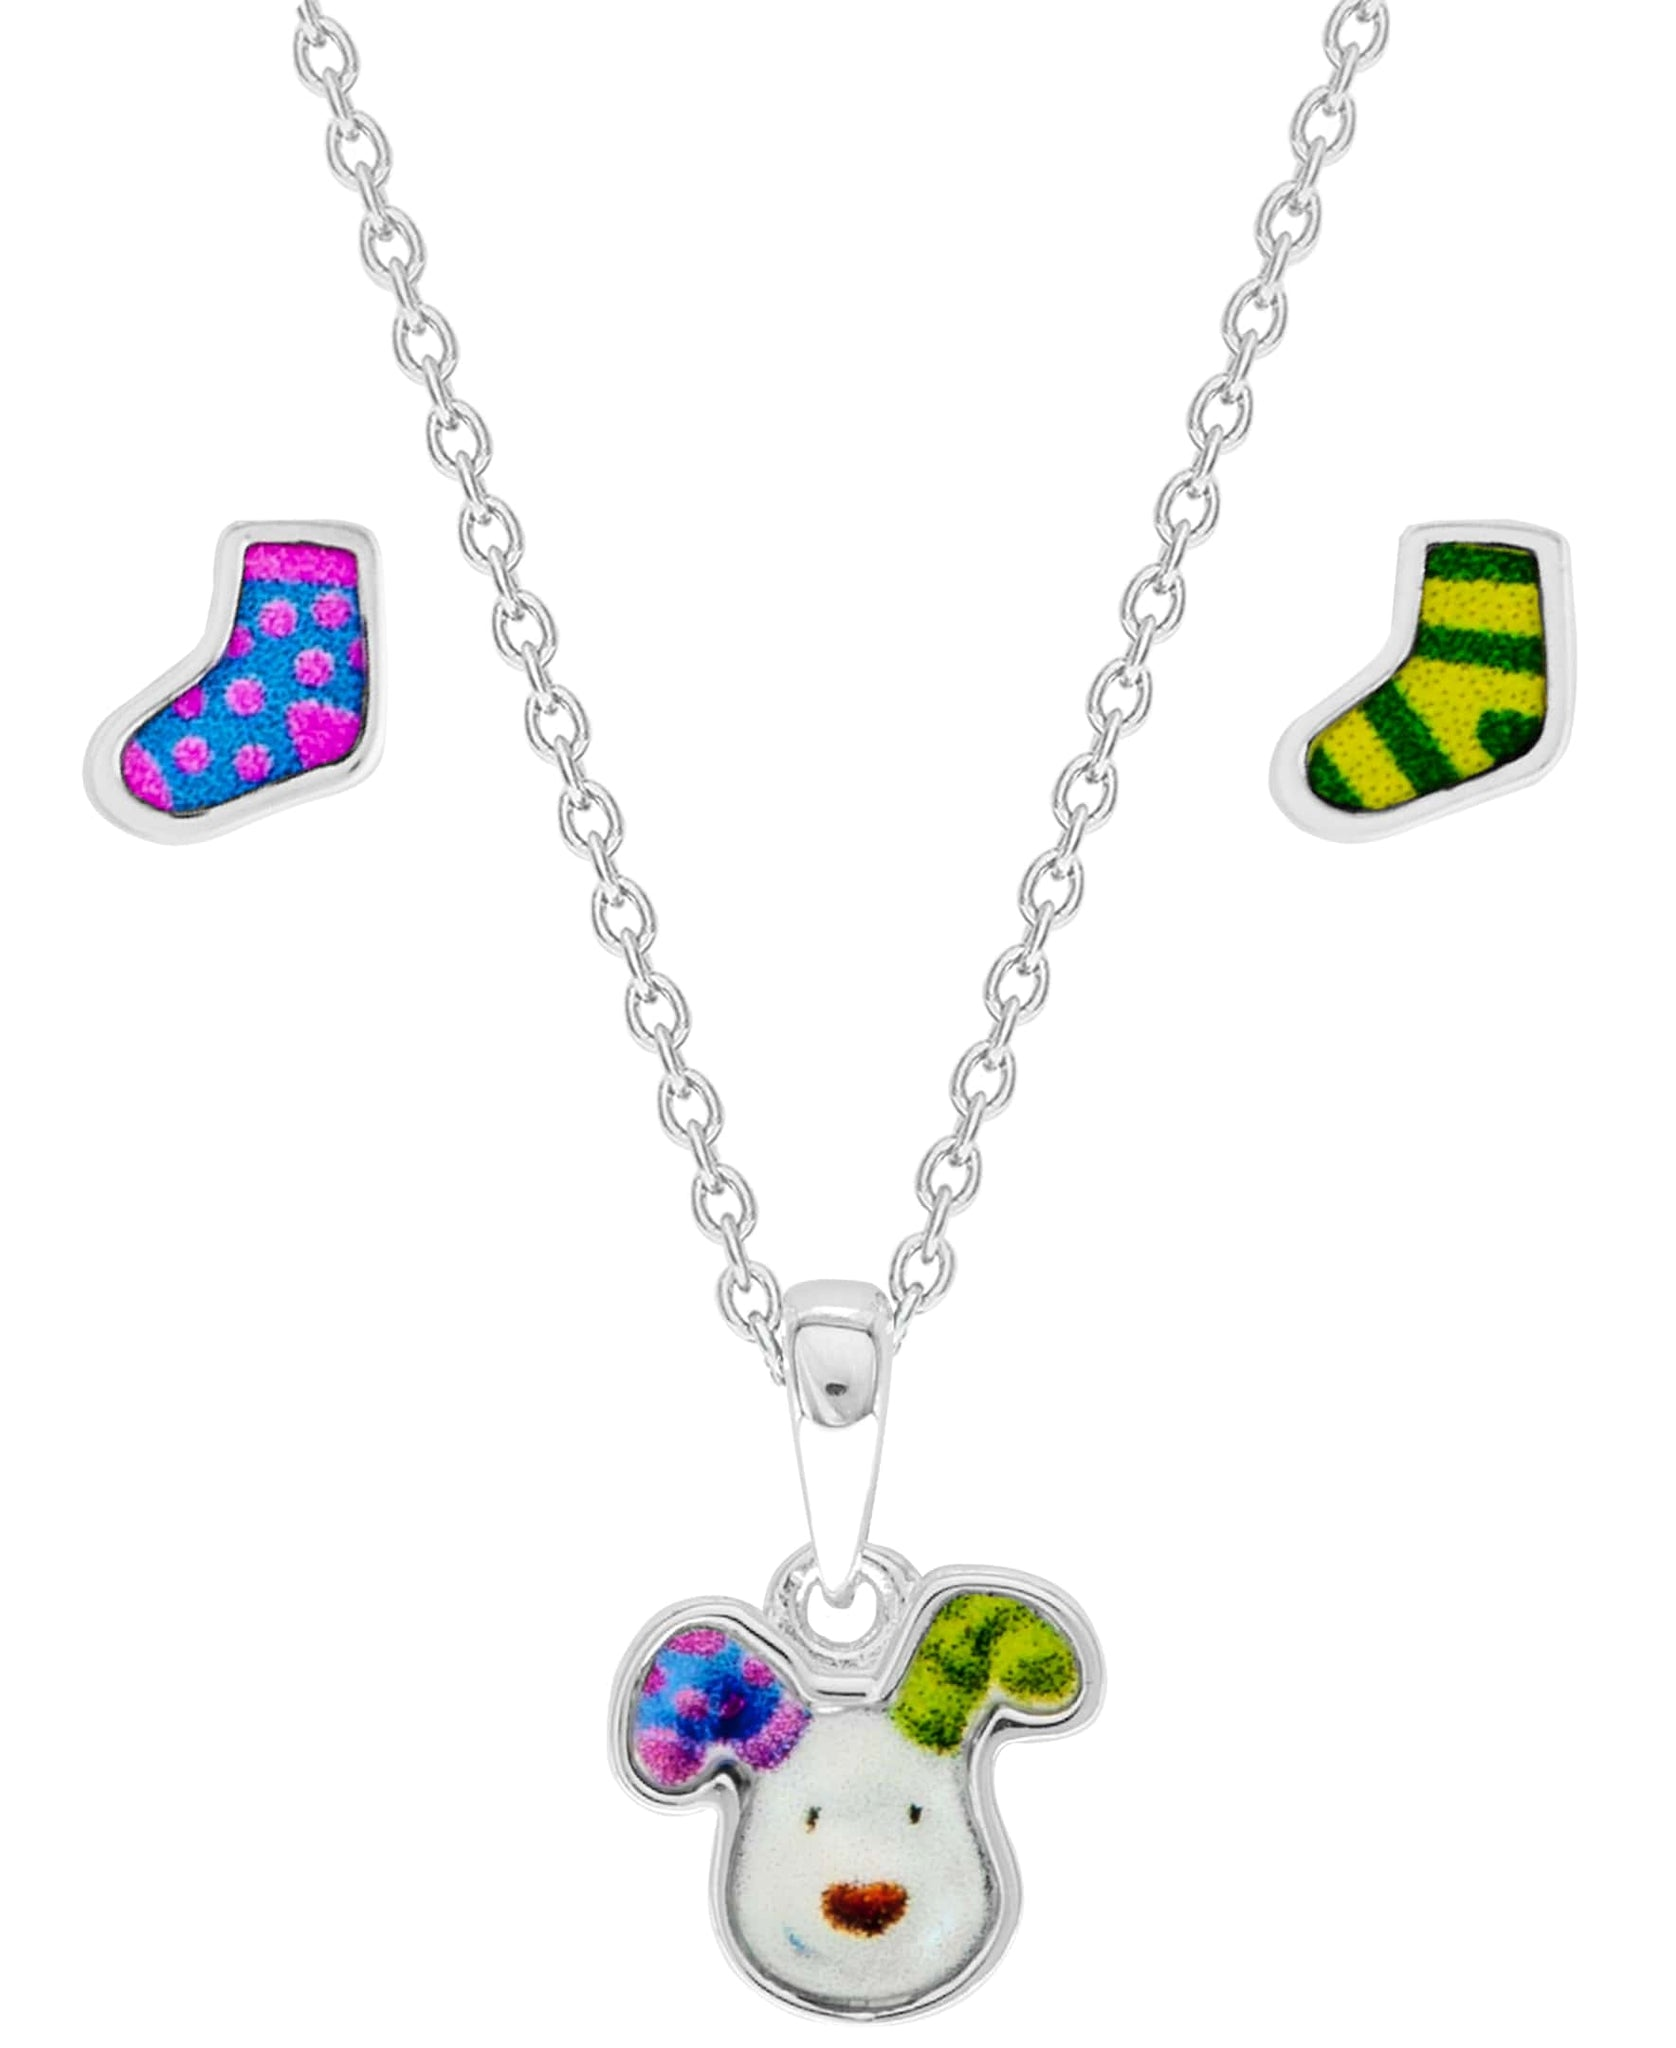 Snowman Pendant Necklace and Stocking Earring Set - Rhona Sutton Jewellery